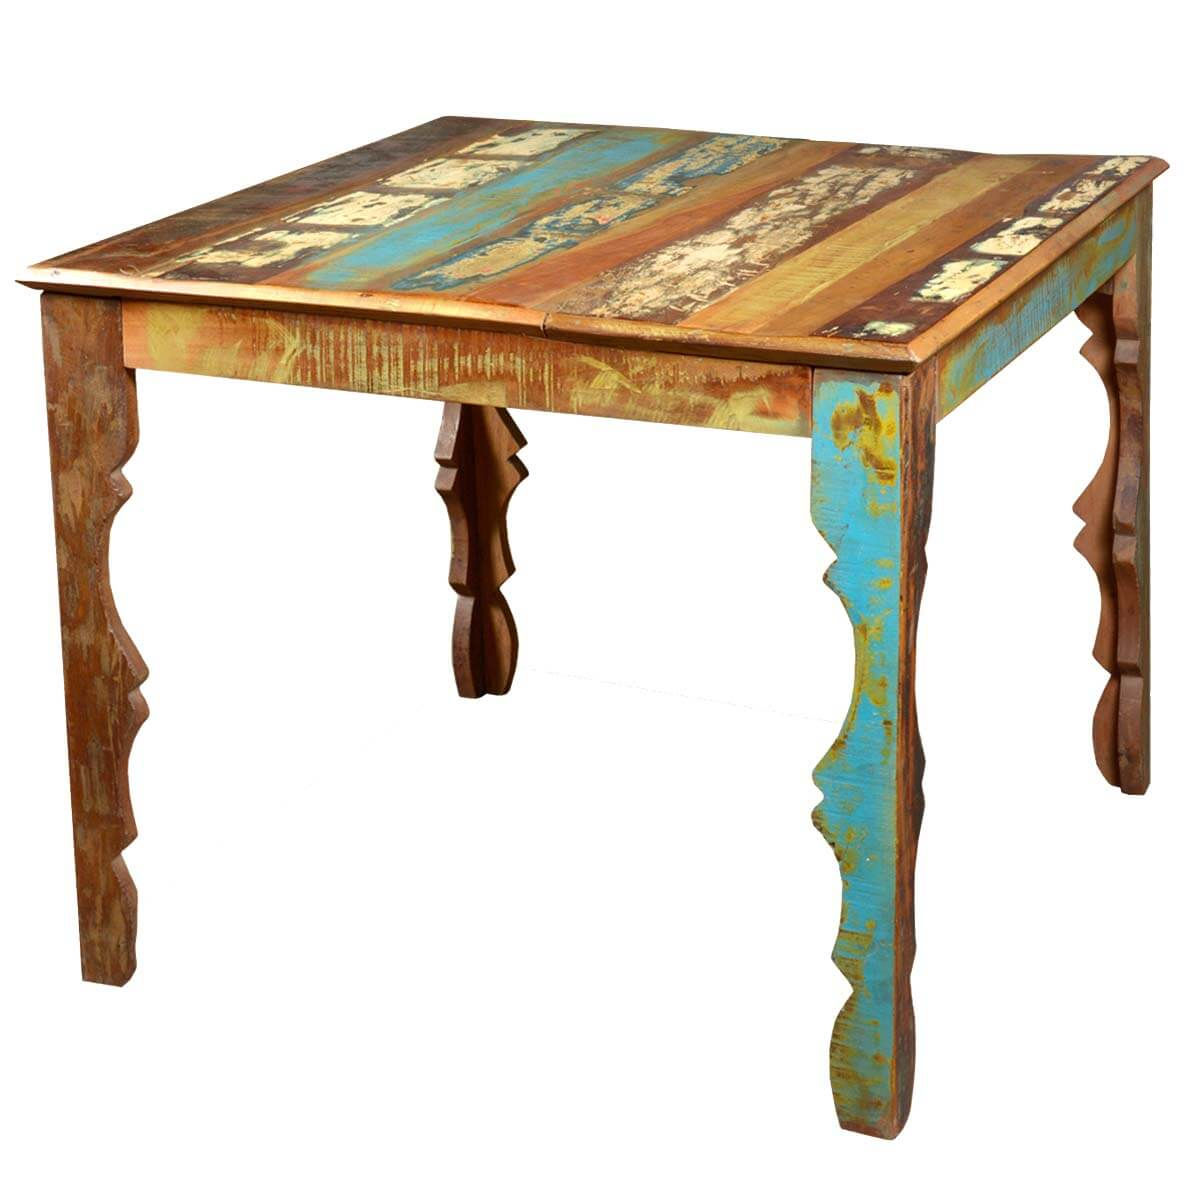 Rustic Reclaimed Wood 36quot Square Dining Table w Decorative  : 43522 from www.sierralivingconcepts.com size 1200 x 1200 jpeg 120kB